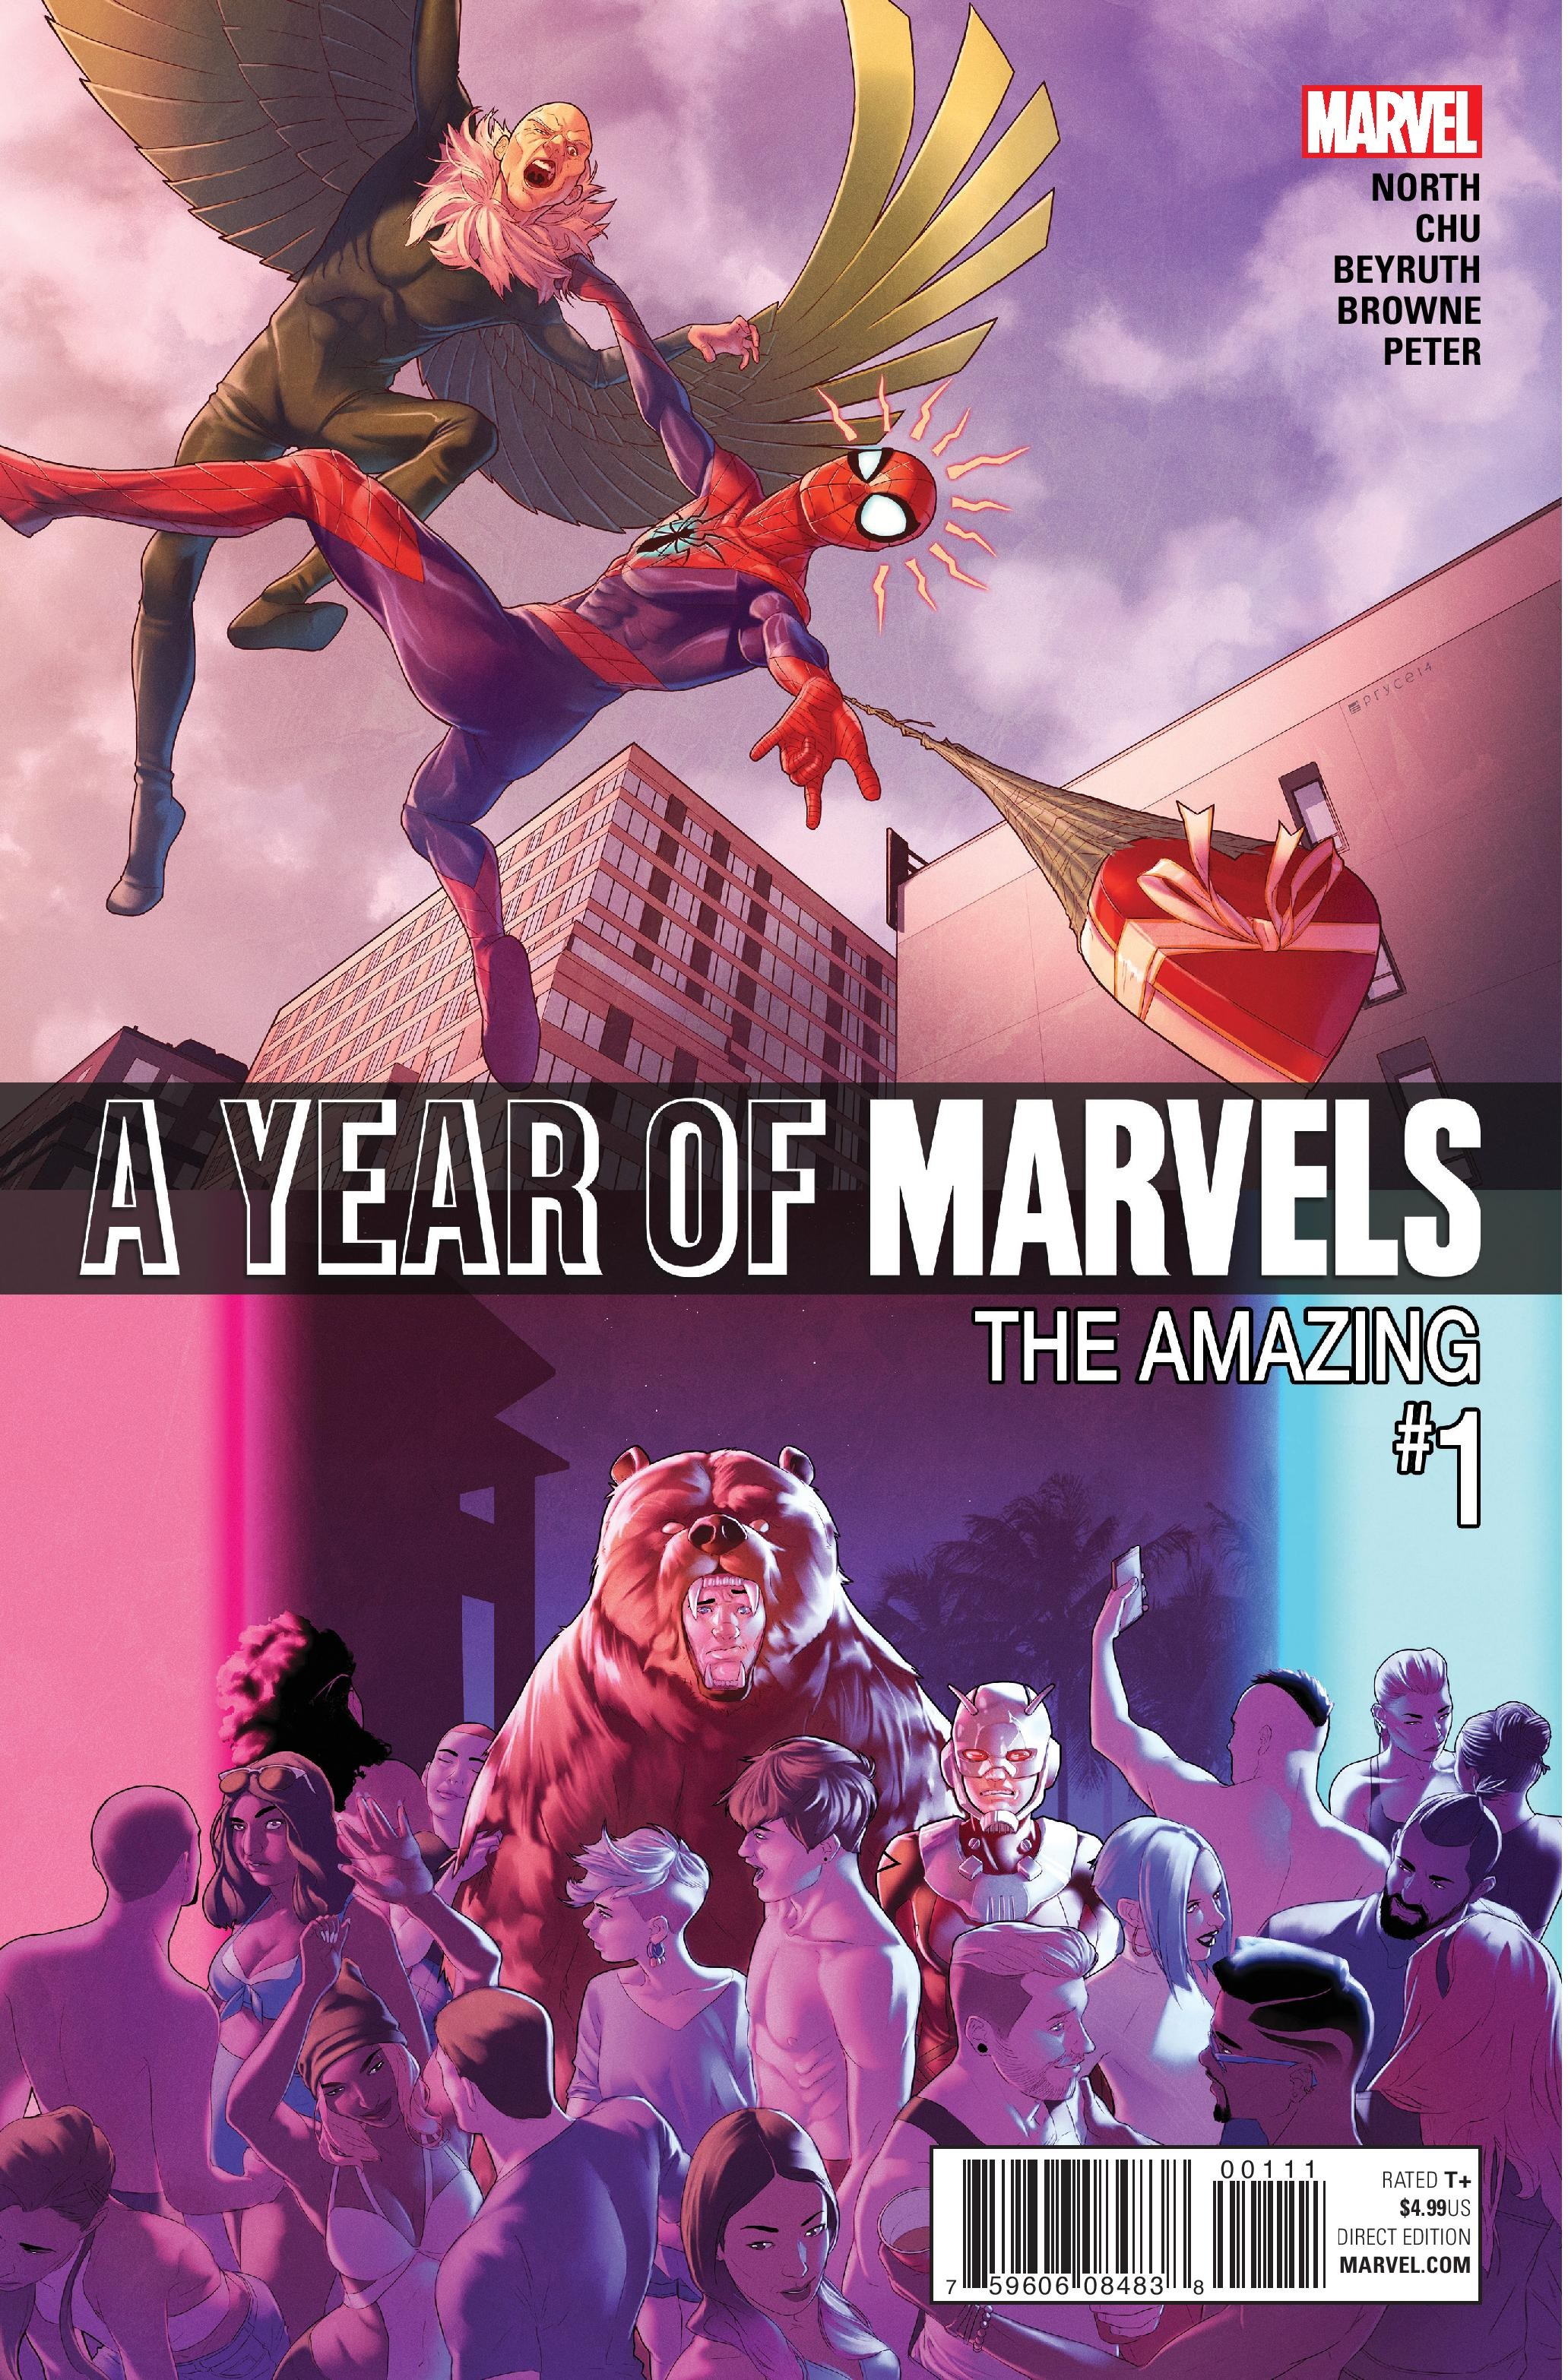 A Year of Marvels: The Amazing (2016) #1